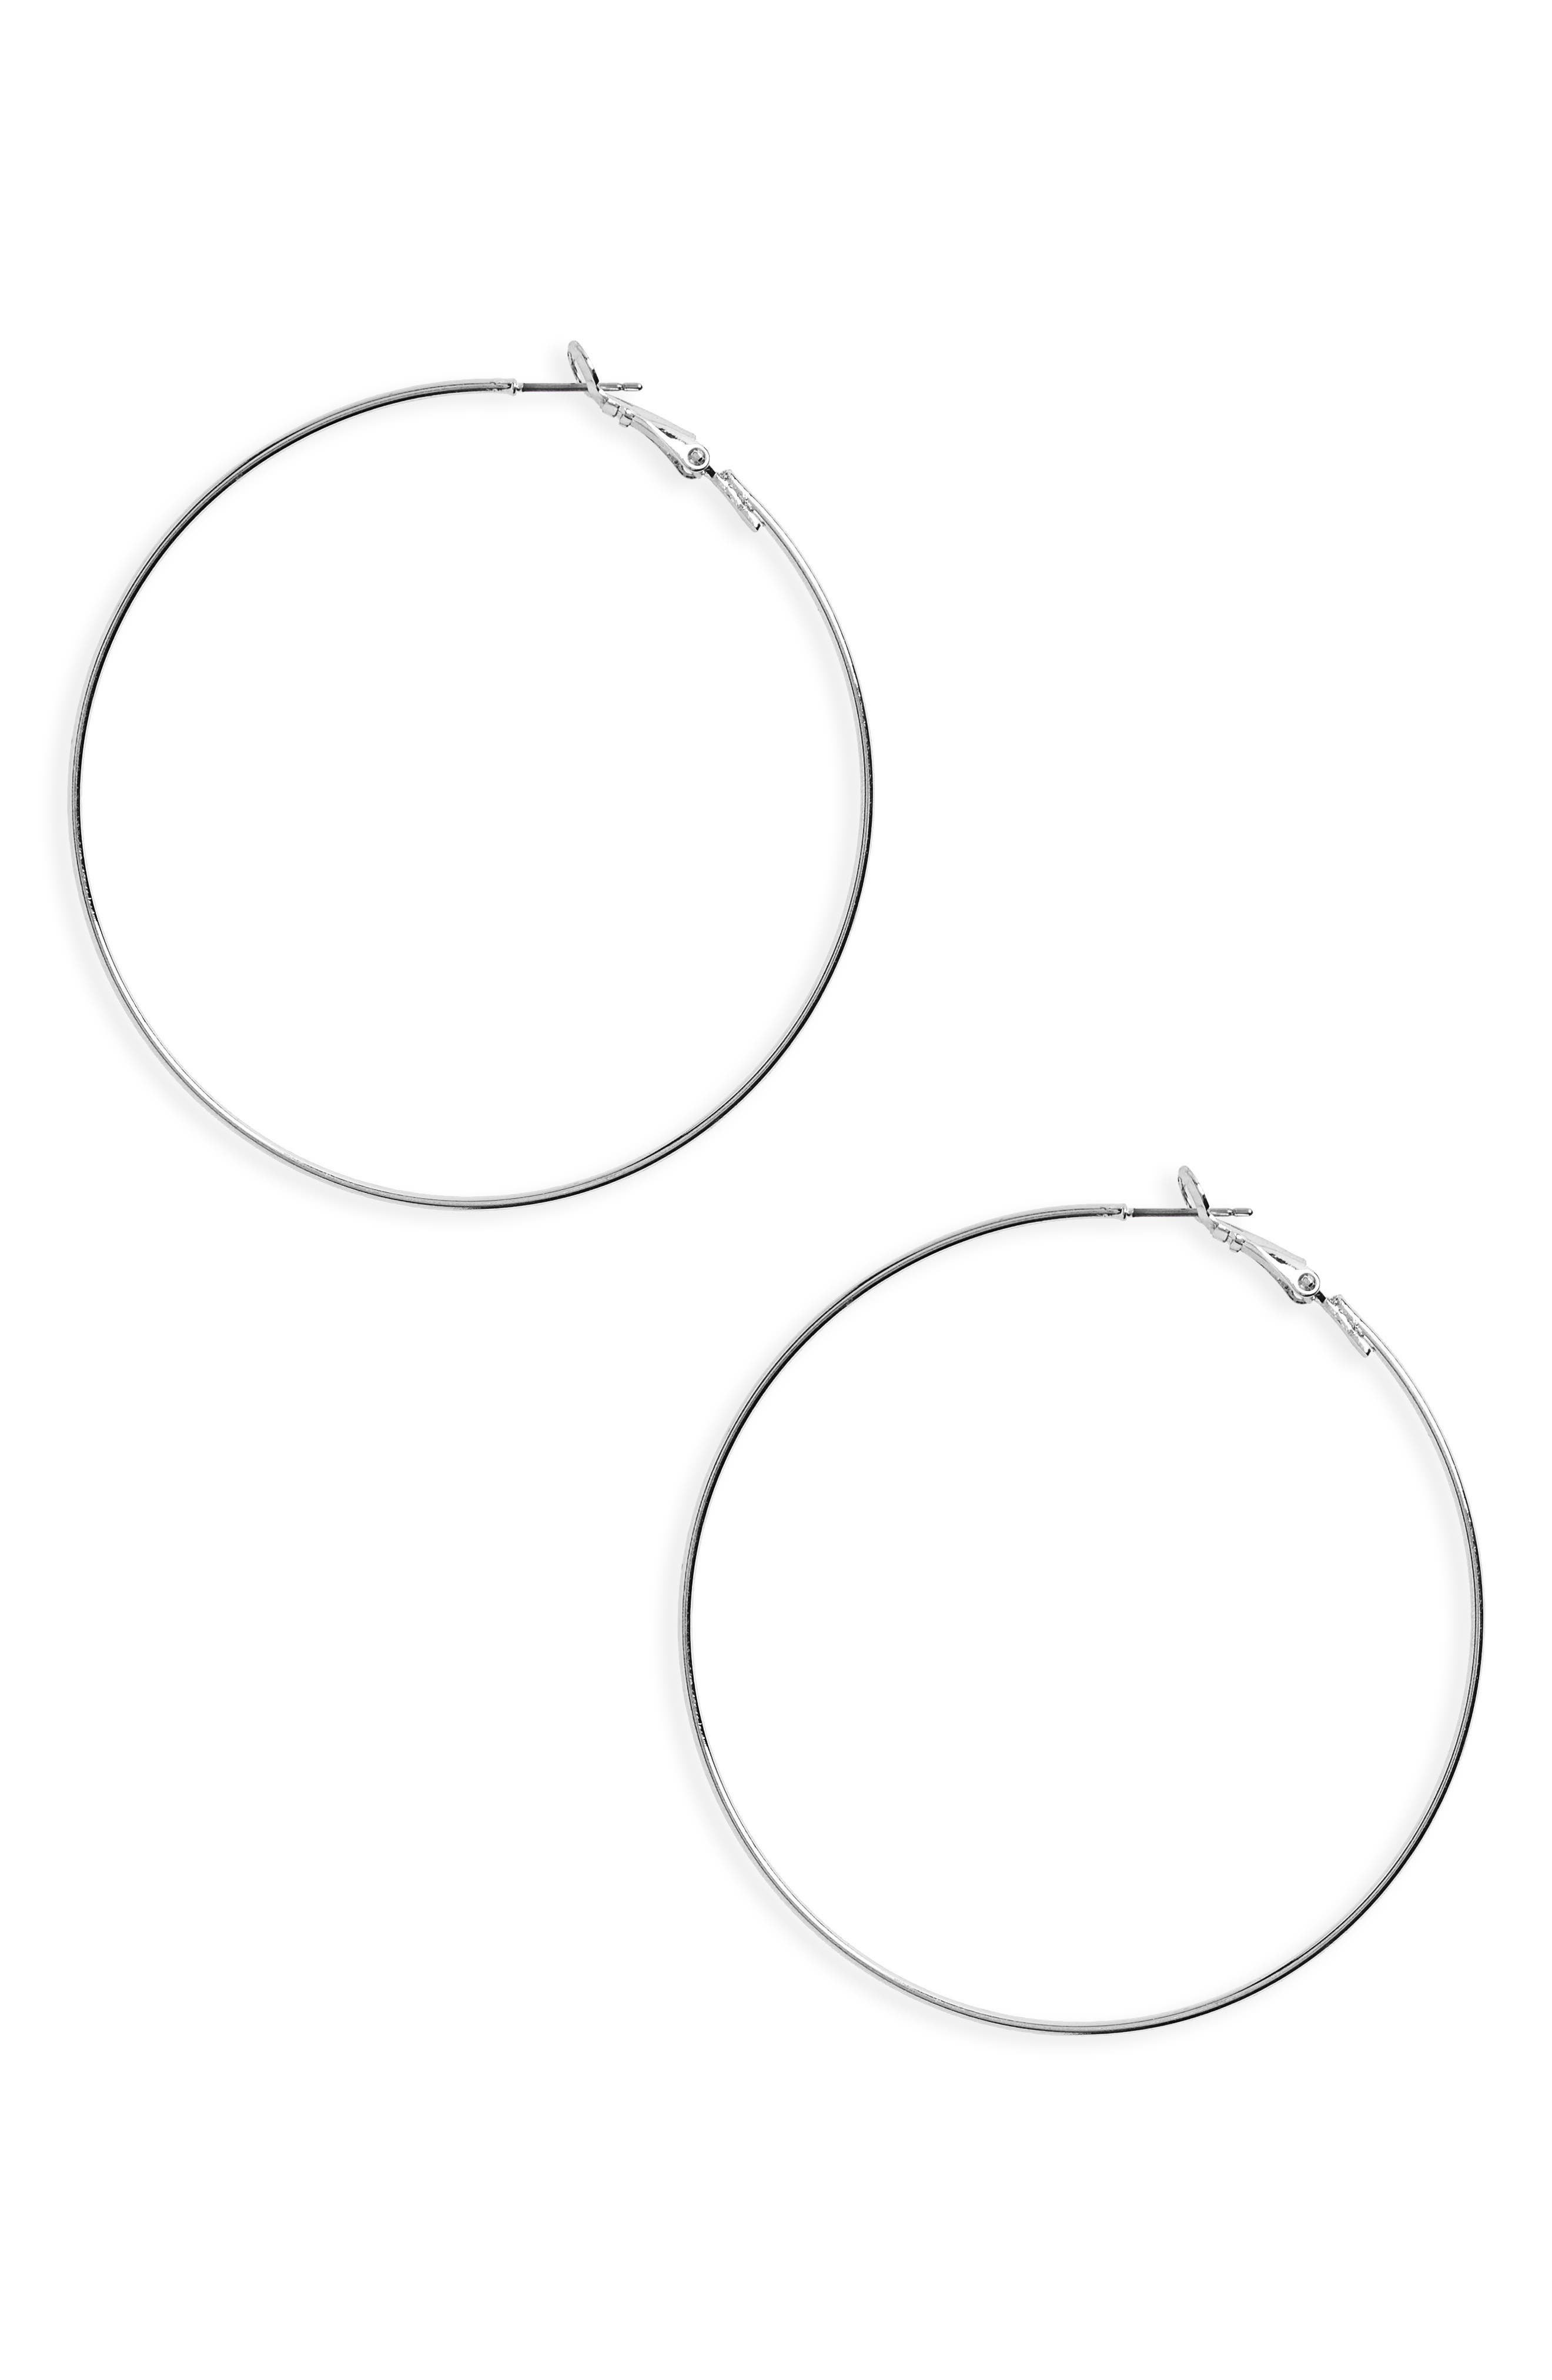 Hoop Earrings,                             Main thumbnail 1, color,                             040